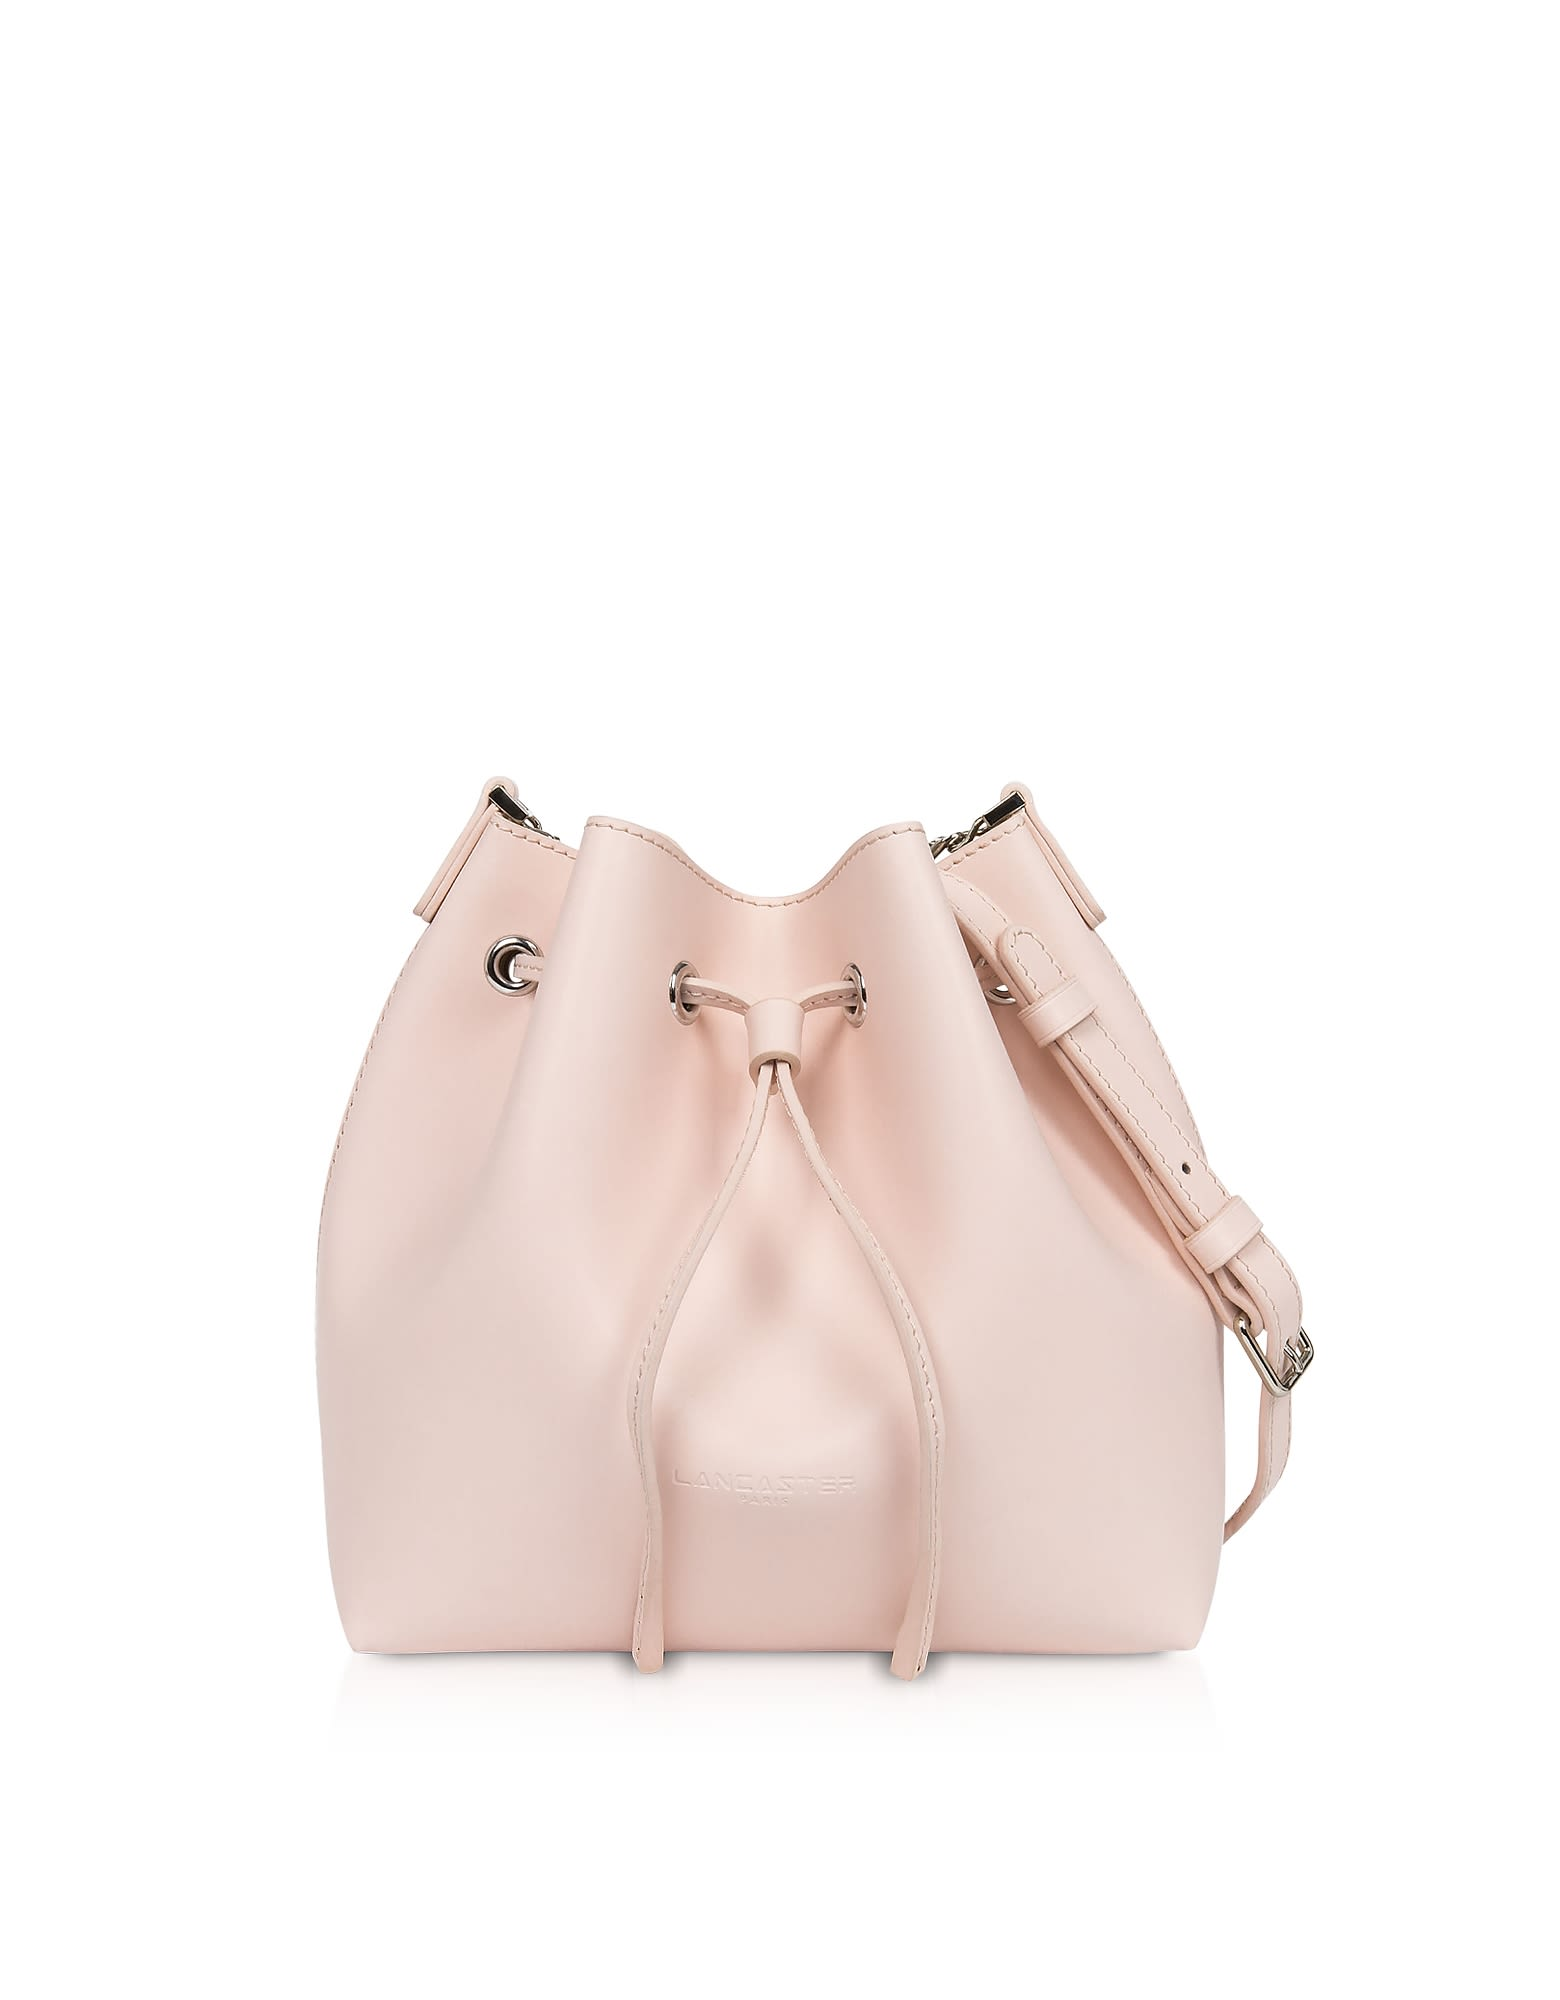 Lancaster TREASURE AND ANNAE LEATHER SMALL BUCKET BAG